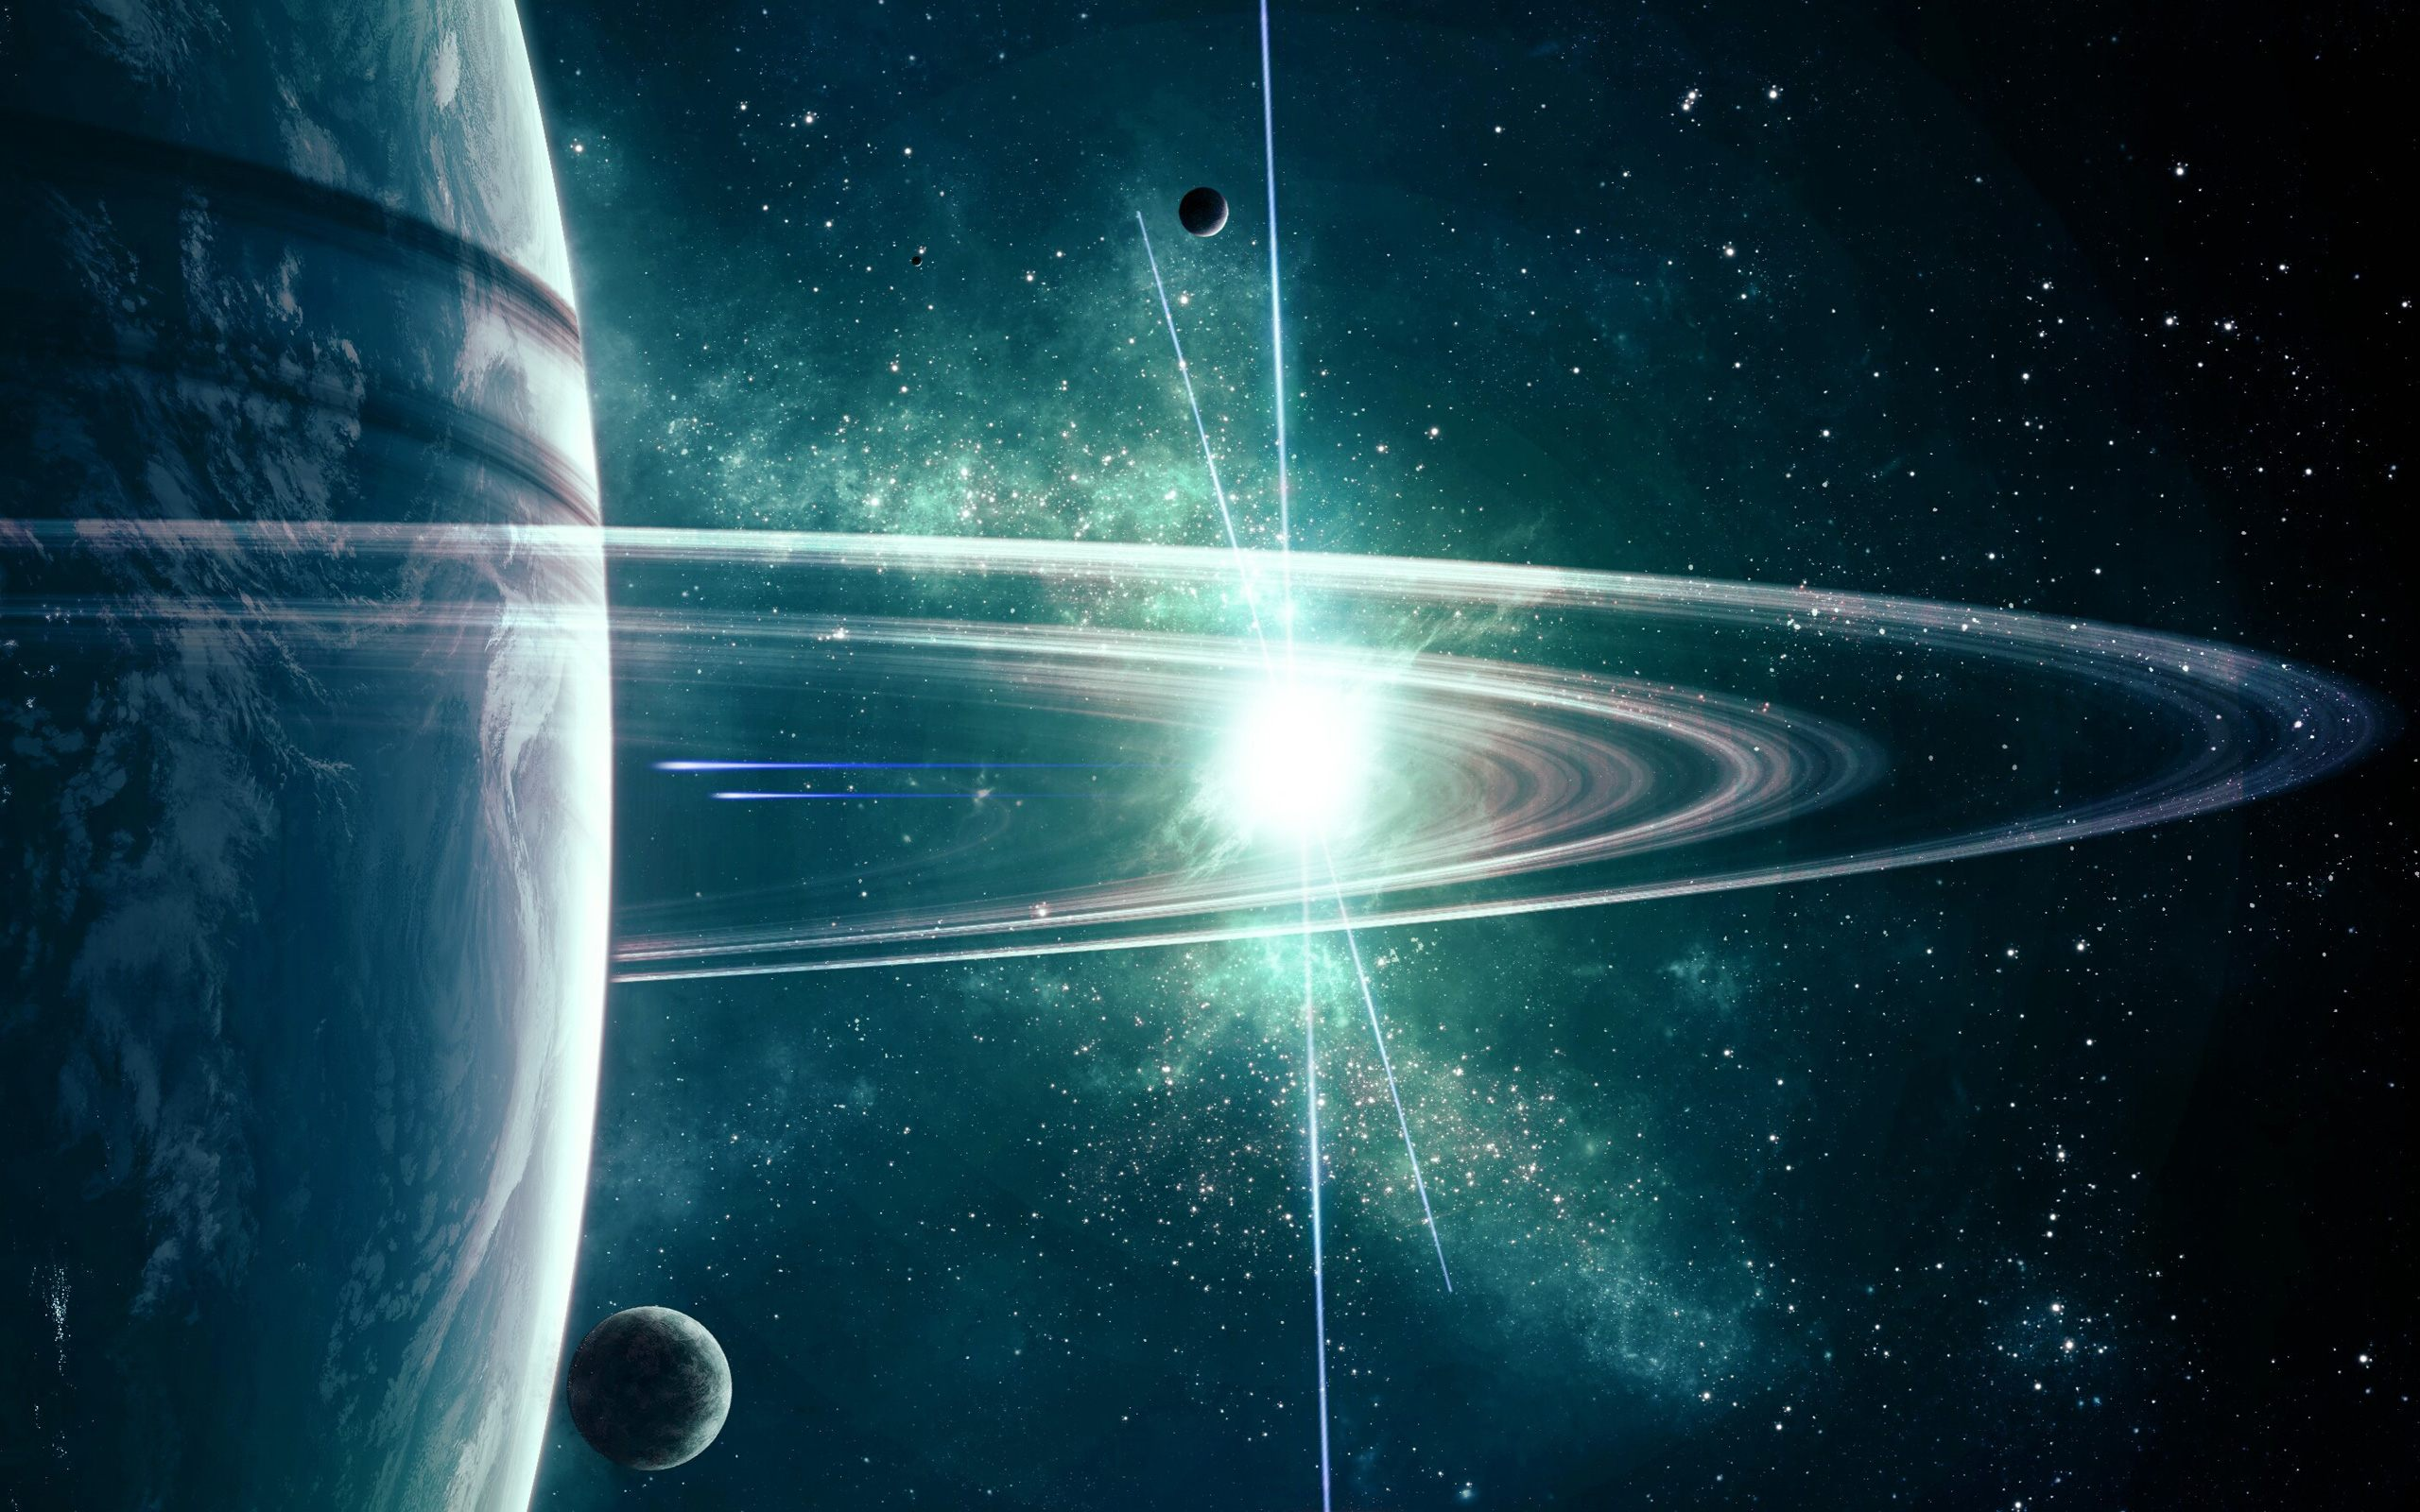 2560x1600 - Planetary Ring Wallpapers 17